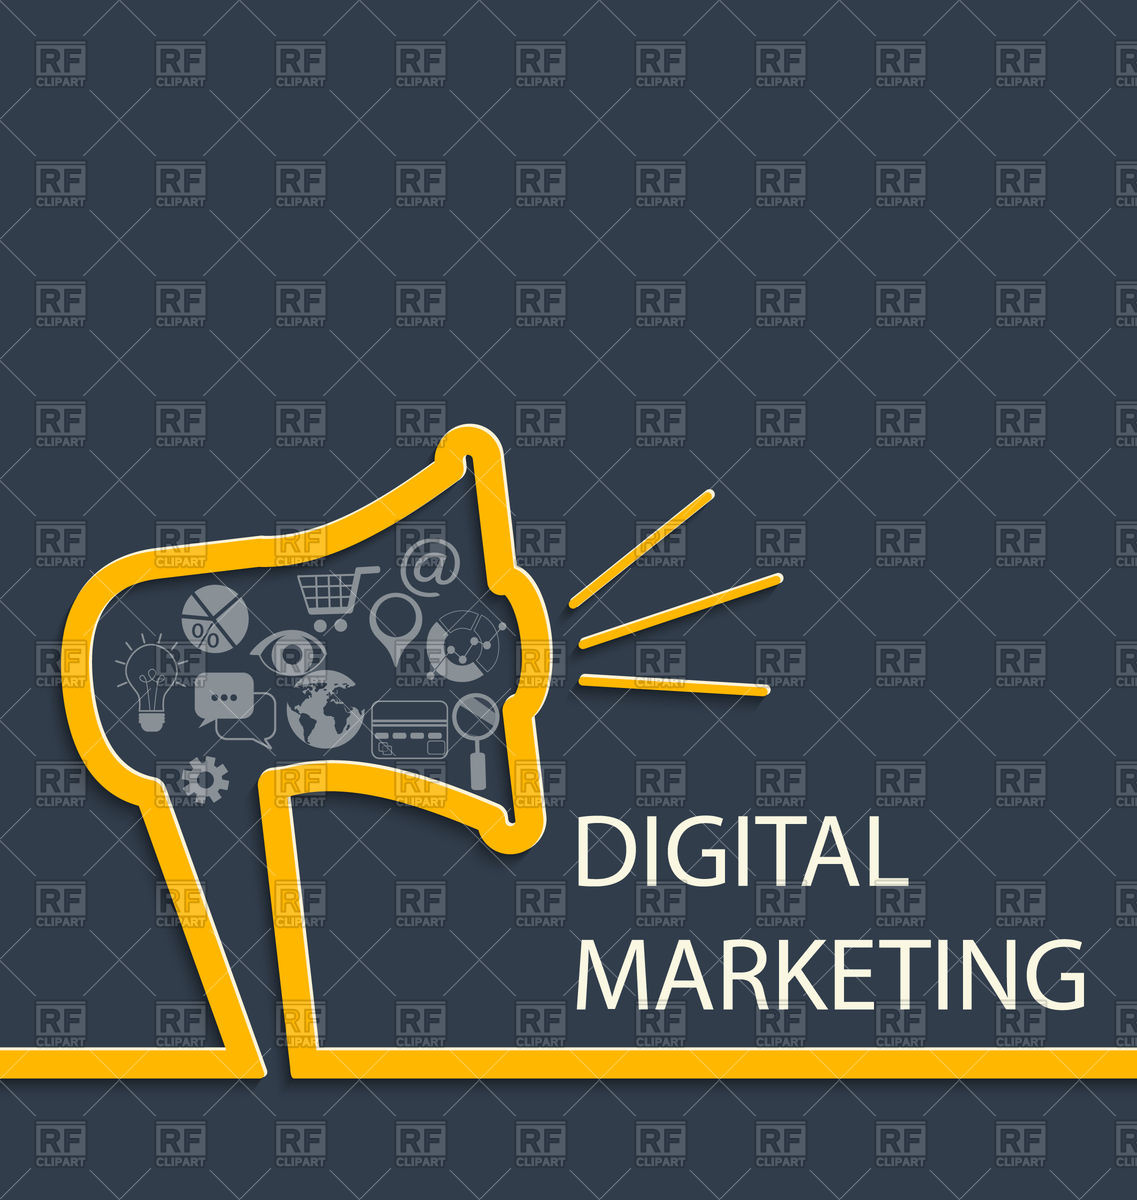 Digital marketing concept background with megaphone Vector Image 1137x1200